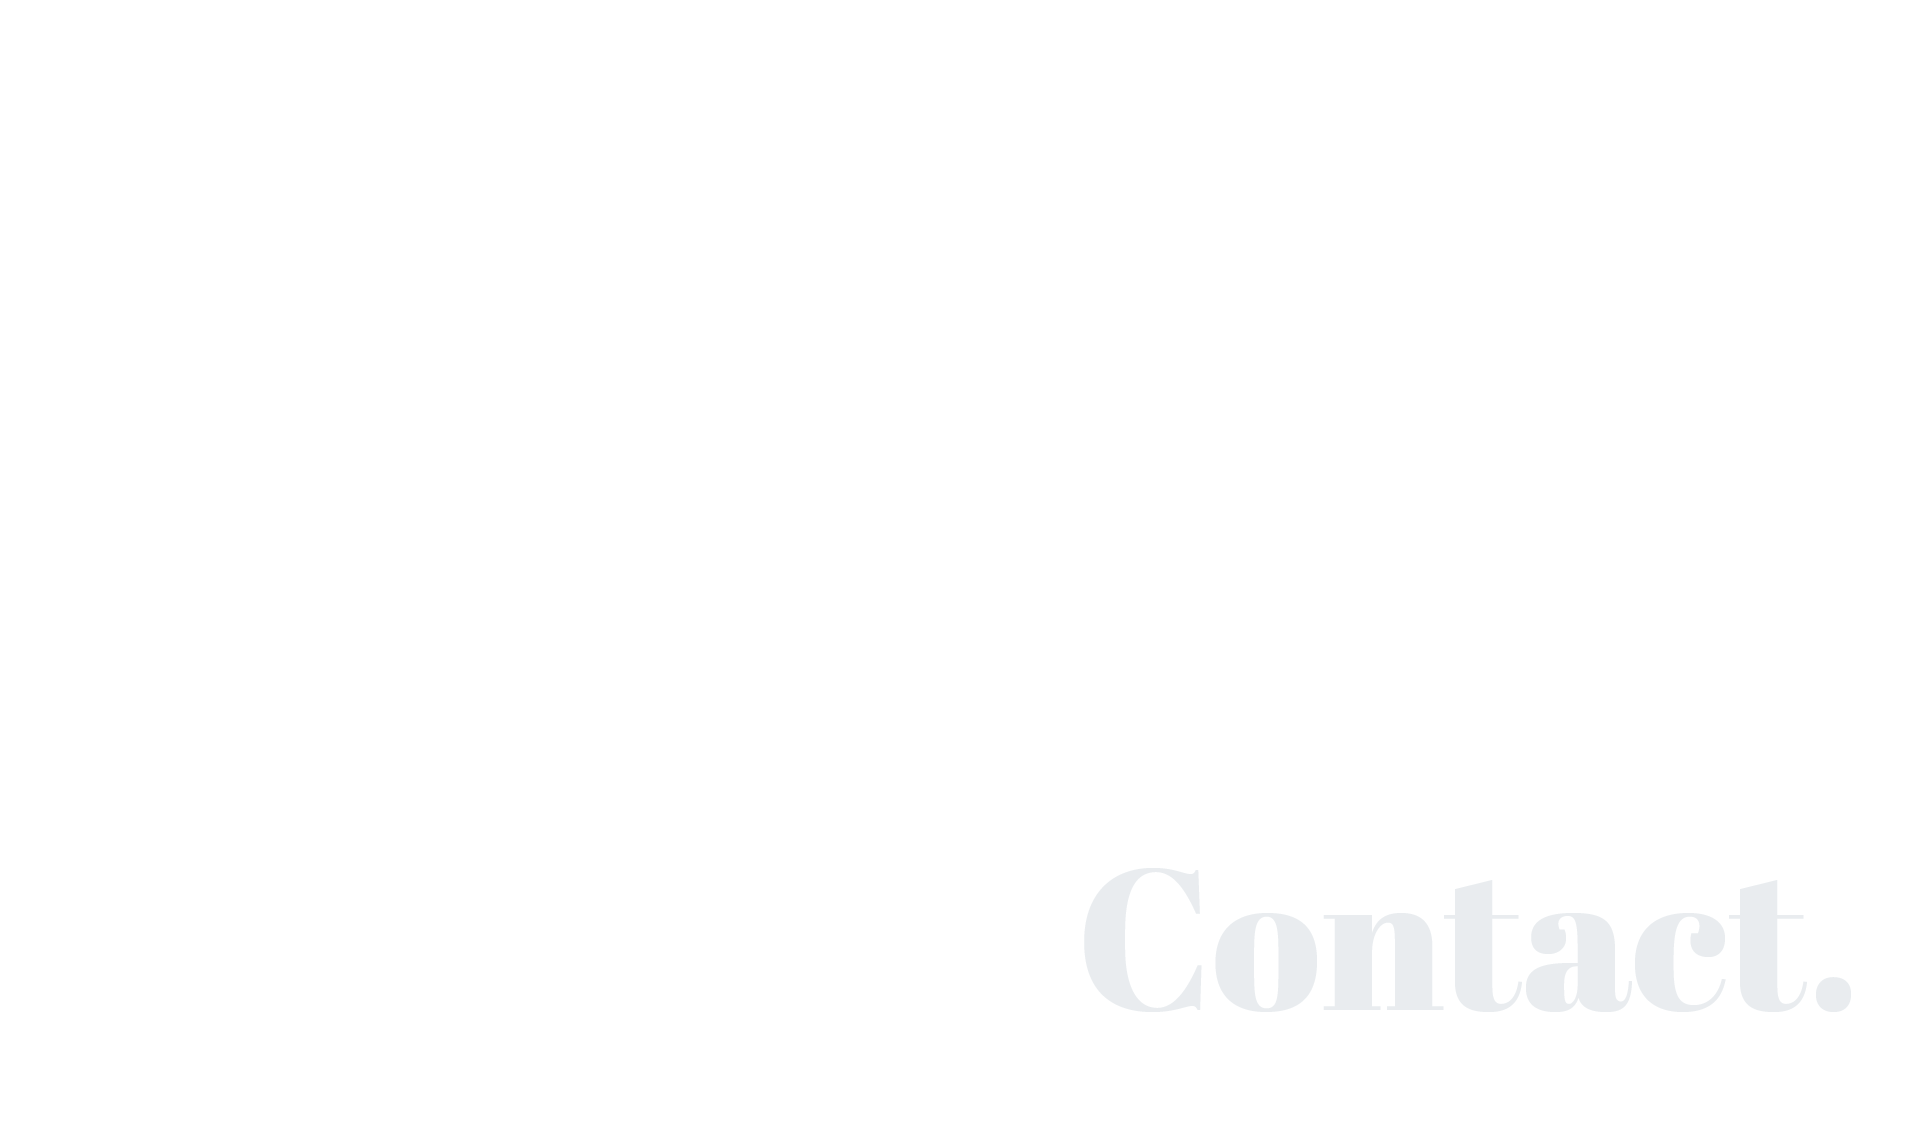 Contact-Text-The-Capital-Building-03